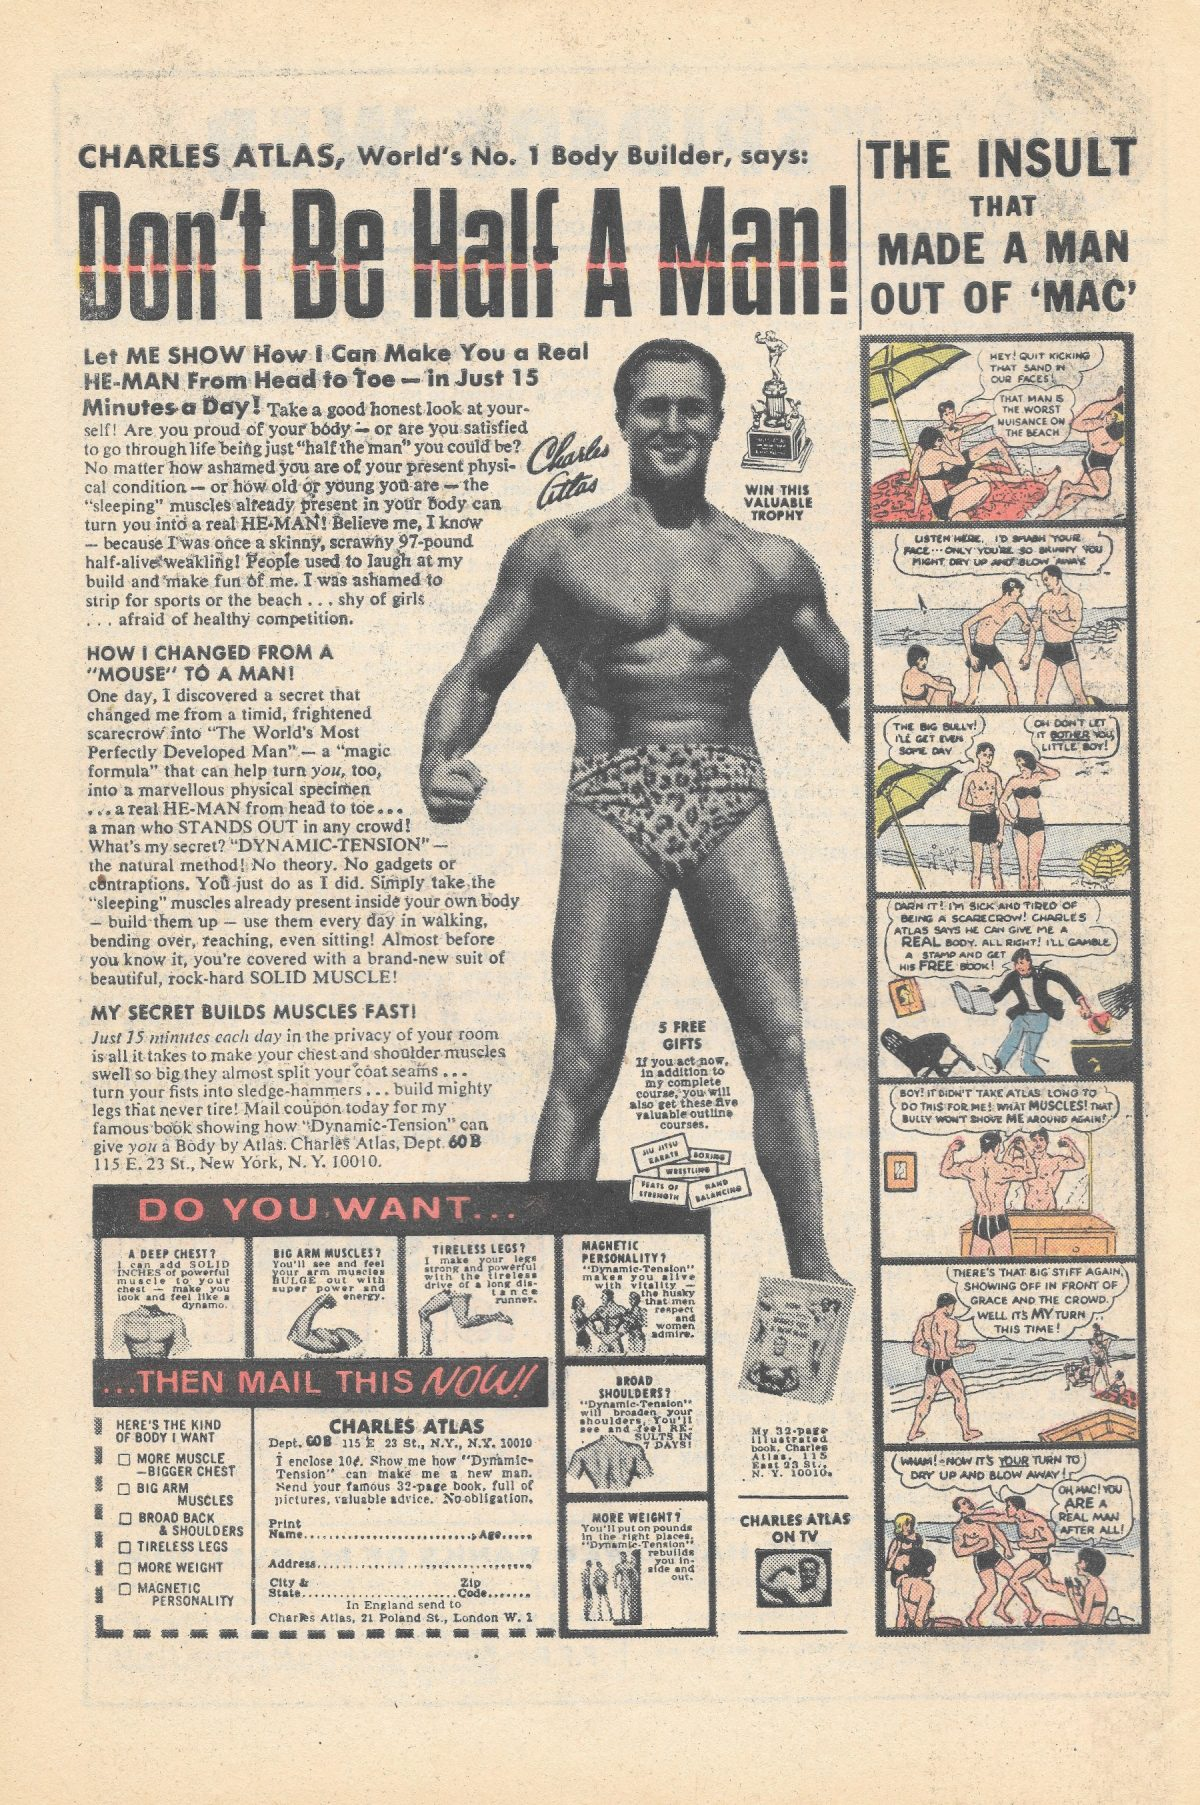 Charles Atlas, bodybuilding, adverts, comics Sea Monkeys, X-Ray Specs, comic book ads Harold von Braunhut